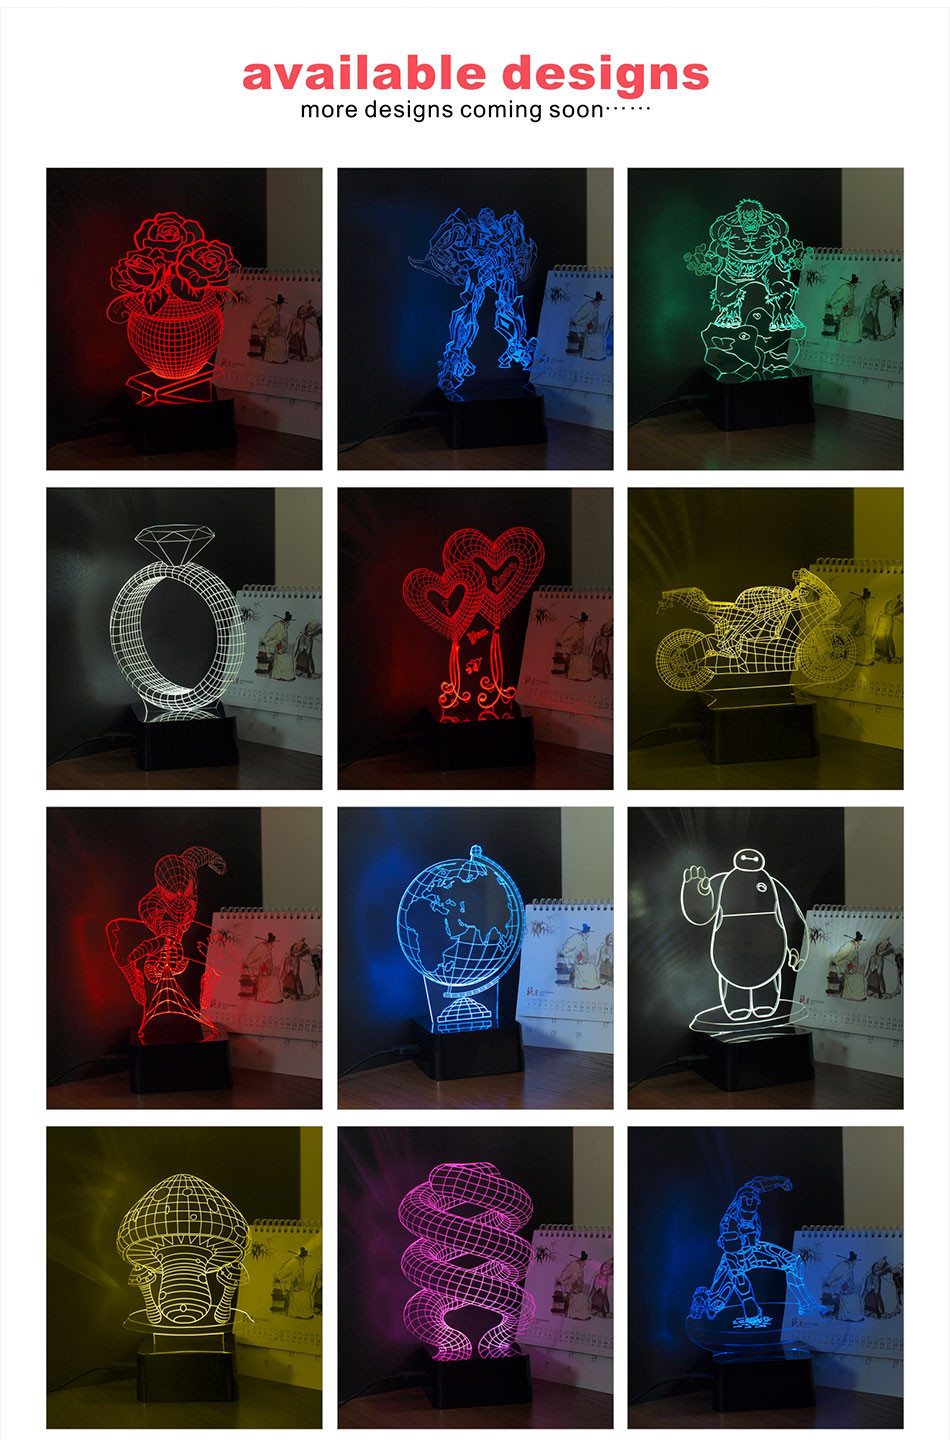 CNHIDEE New Novelty Star Wars BB-8 3D Night Lamp 7 Colors Changeable LED Besides Lampara Reading Lights as Home Decor Desk Lampe (6)